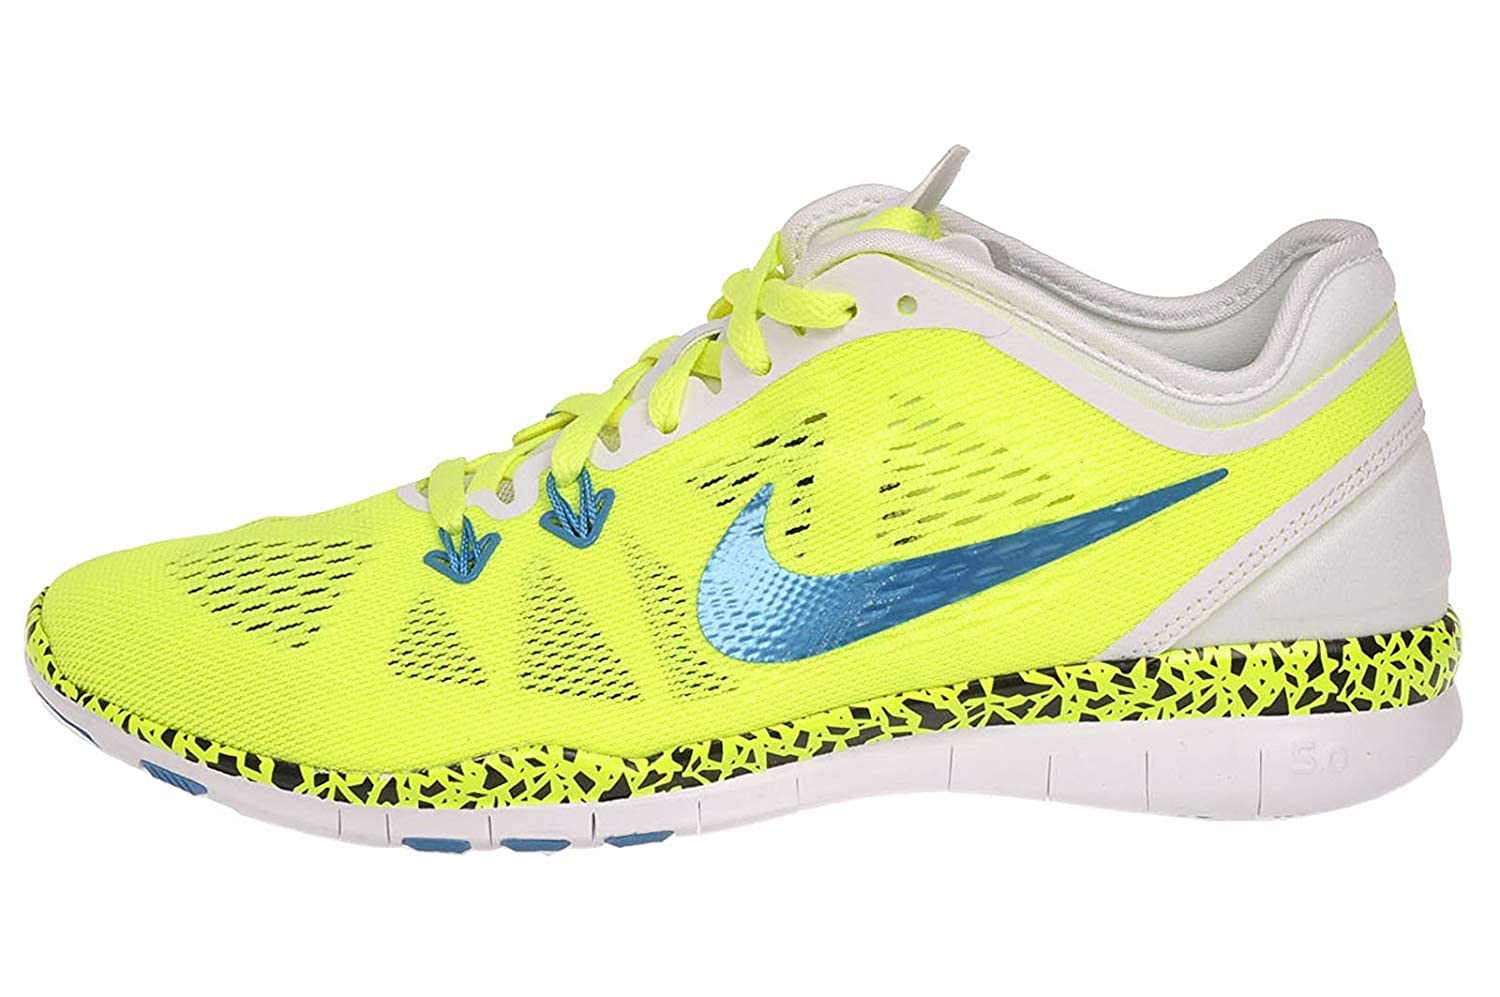 promo code a3245 8ff7e NIKE Womens Free 5.0 TR Fit 5 Training Shoes Running Volt/Blue